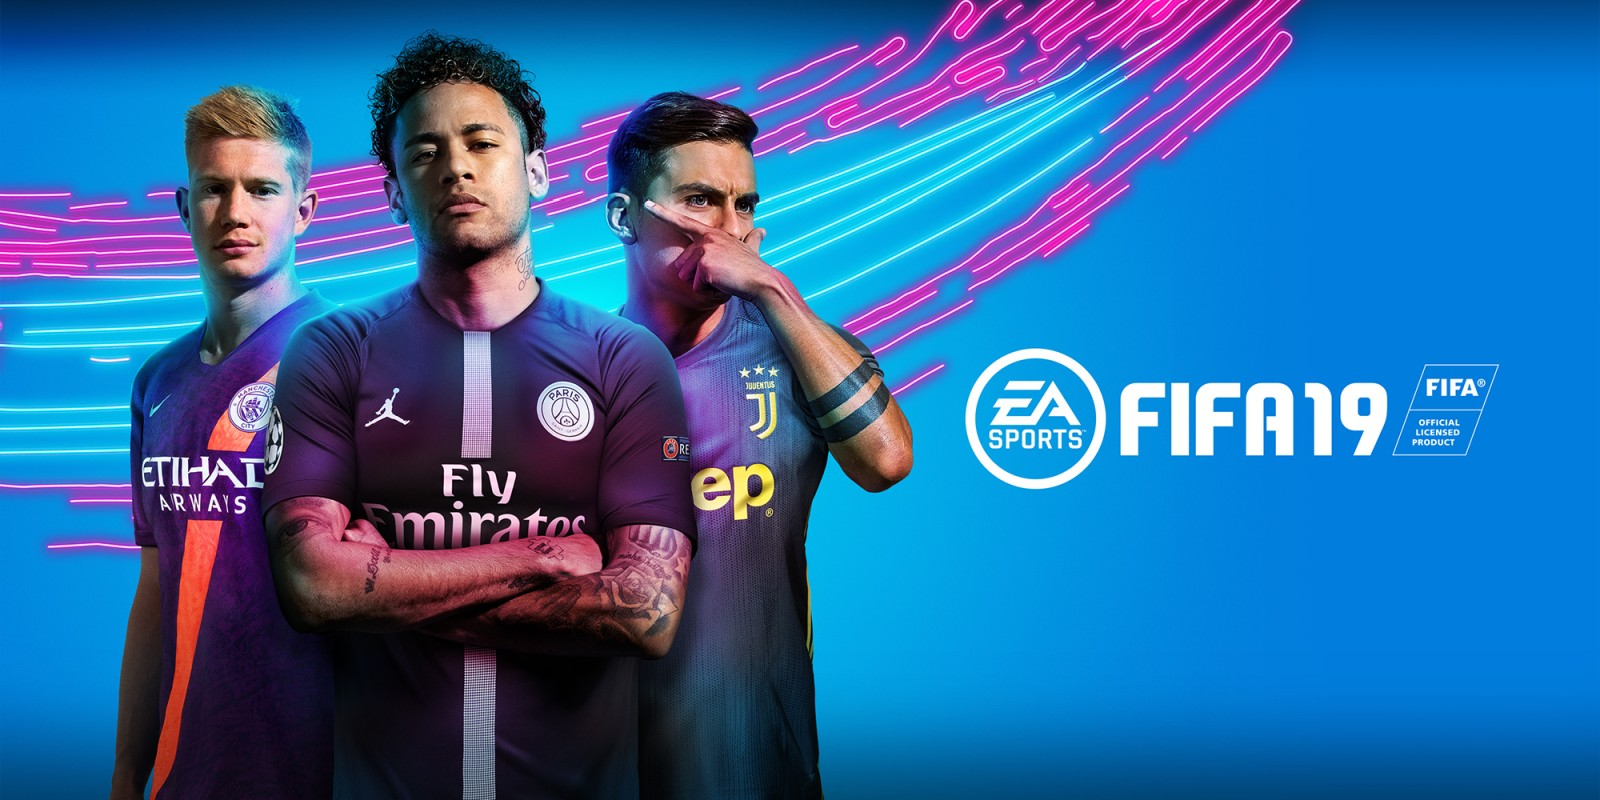 Four Kids Exhaust Parents' Bank Account On FIFA Packs Trying To Buy